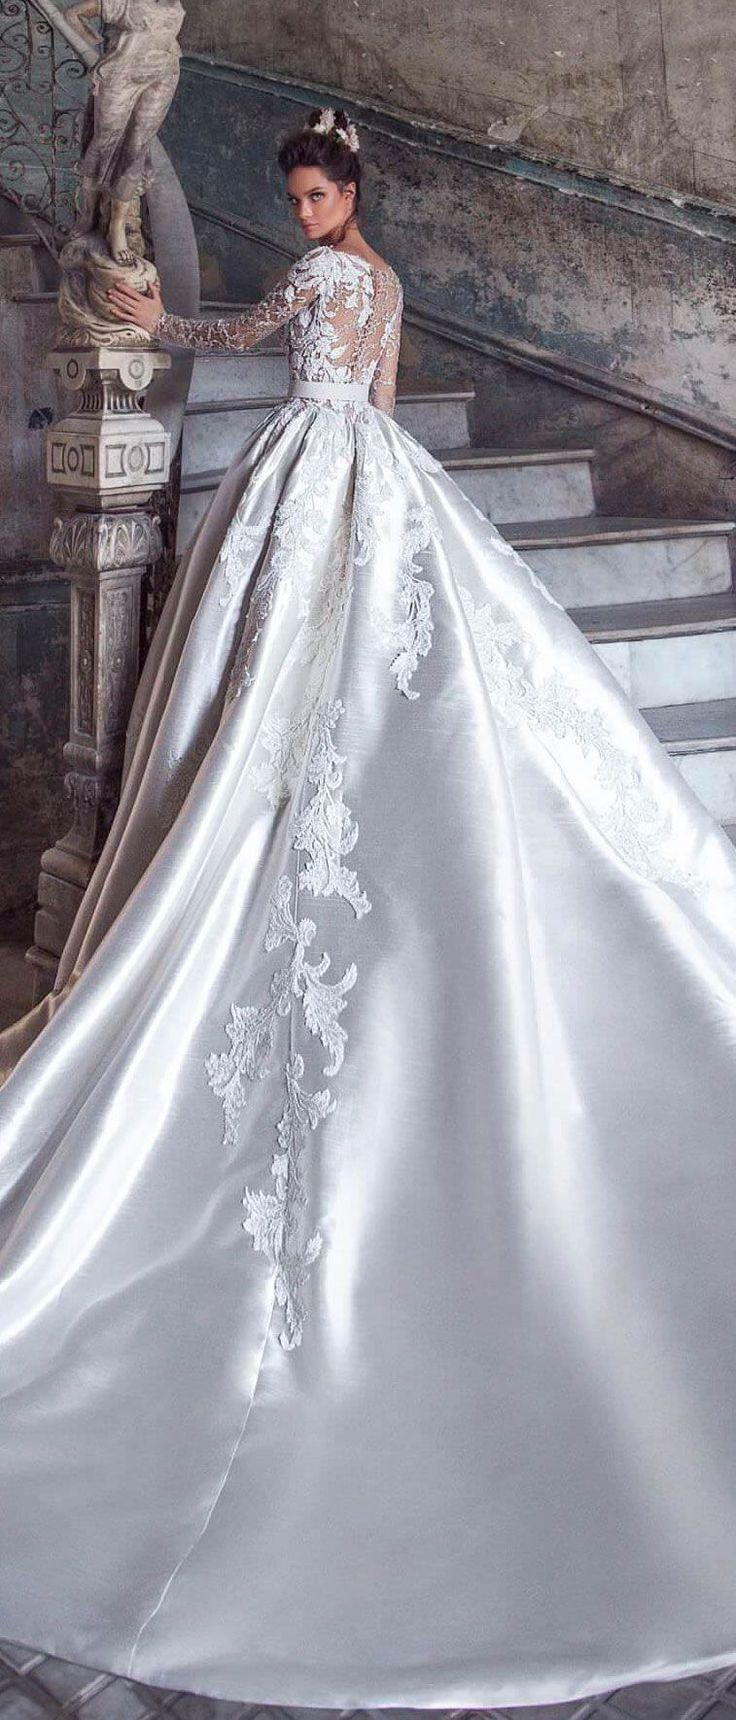 Wedding - Wedding Dress Inspiration